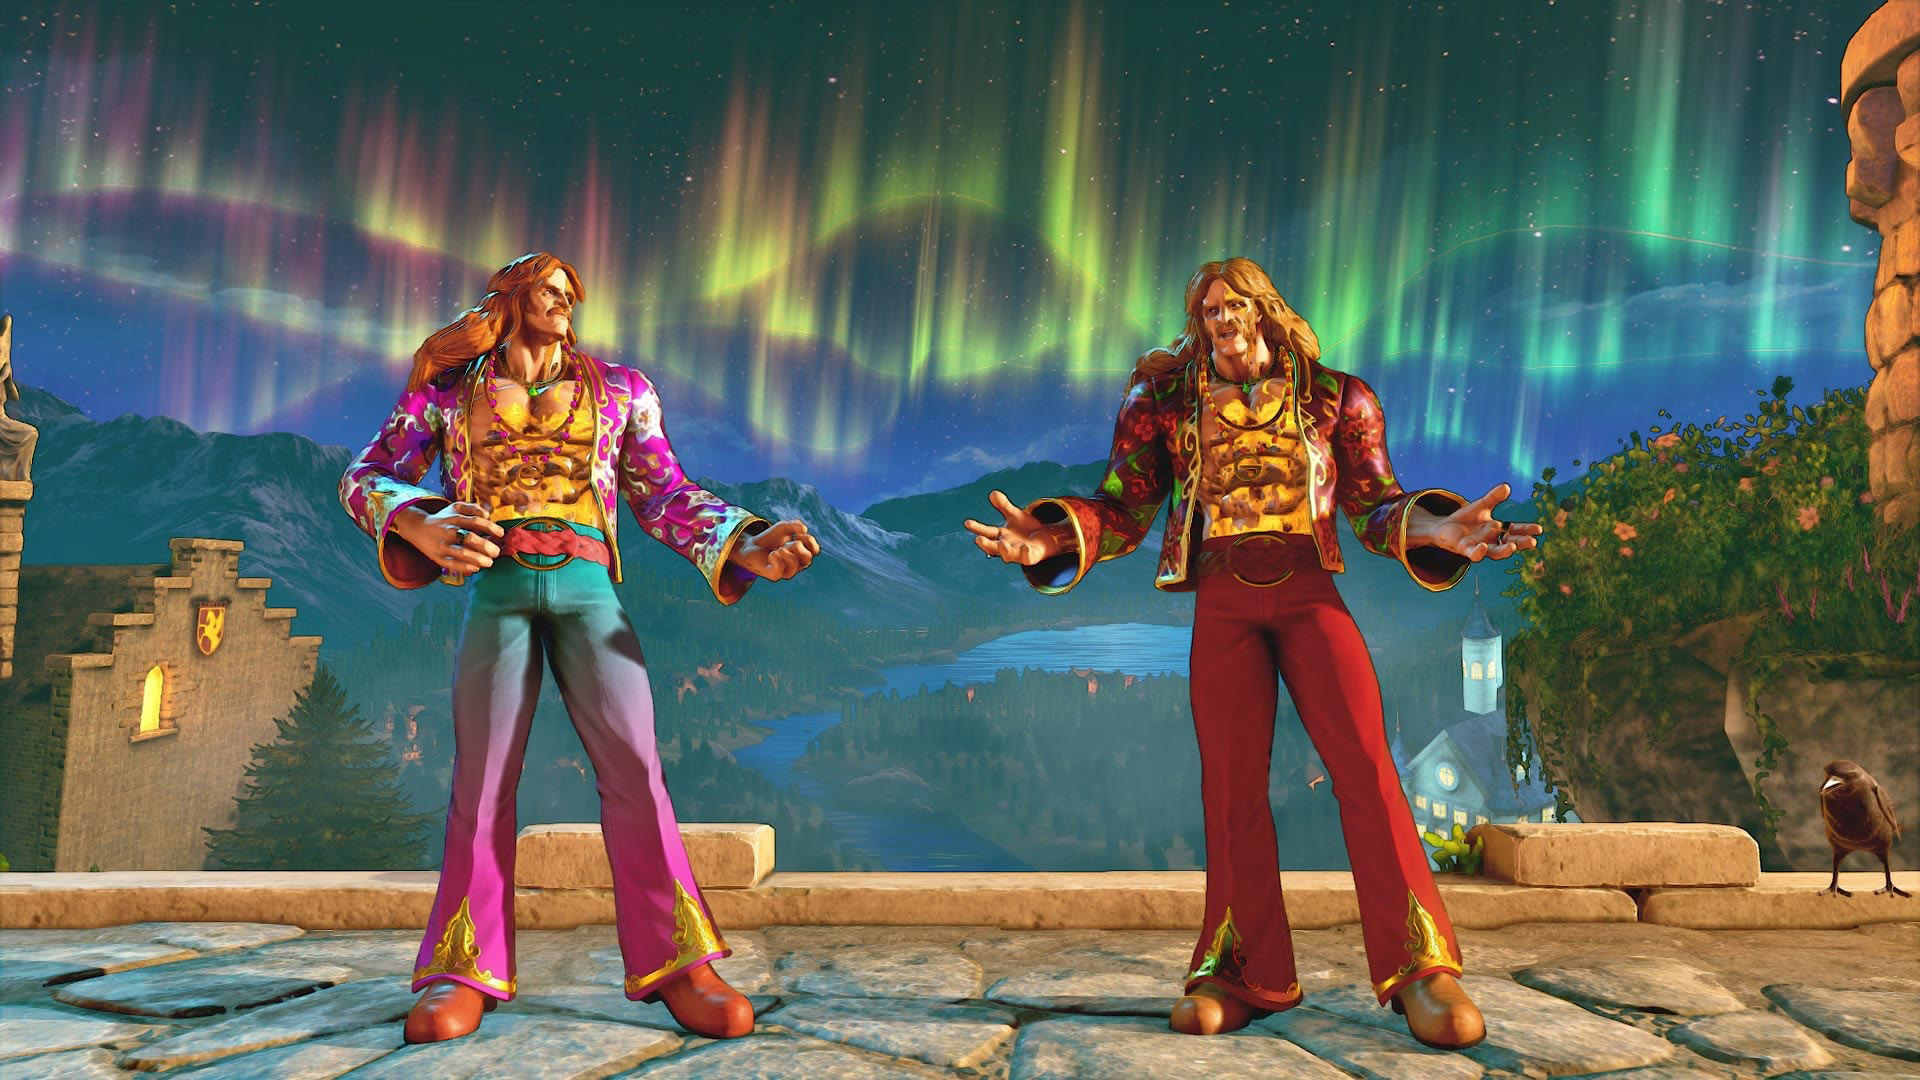 CPT Costumes 17 out of 17 image gallery